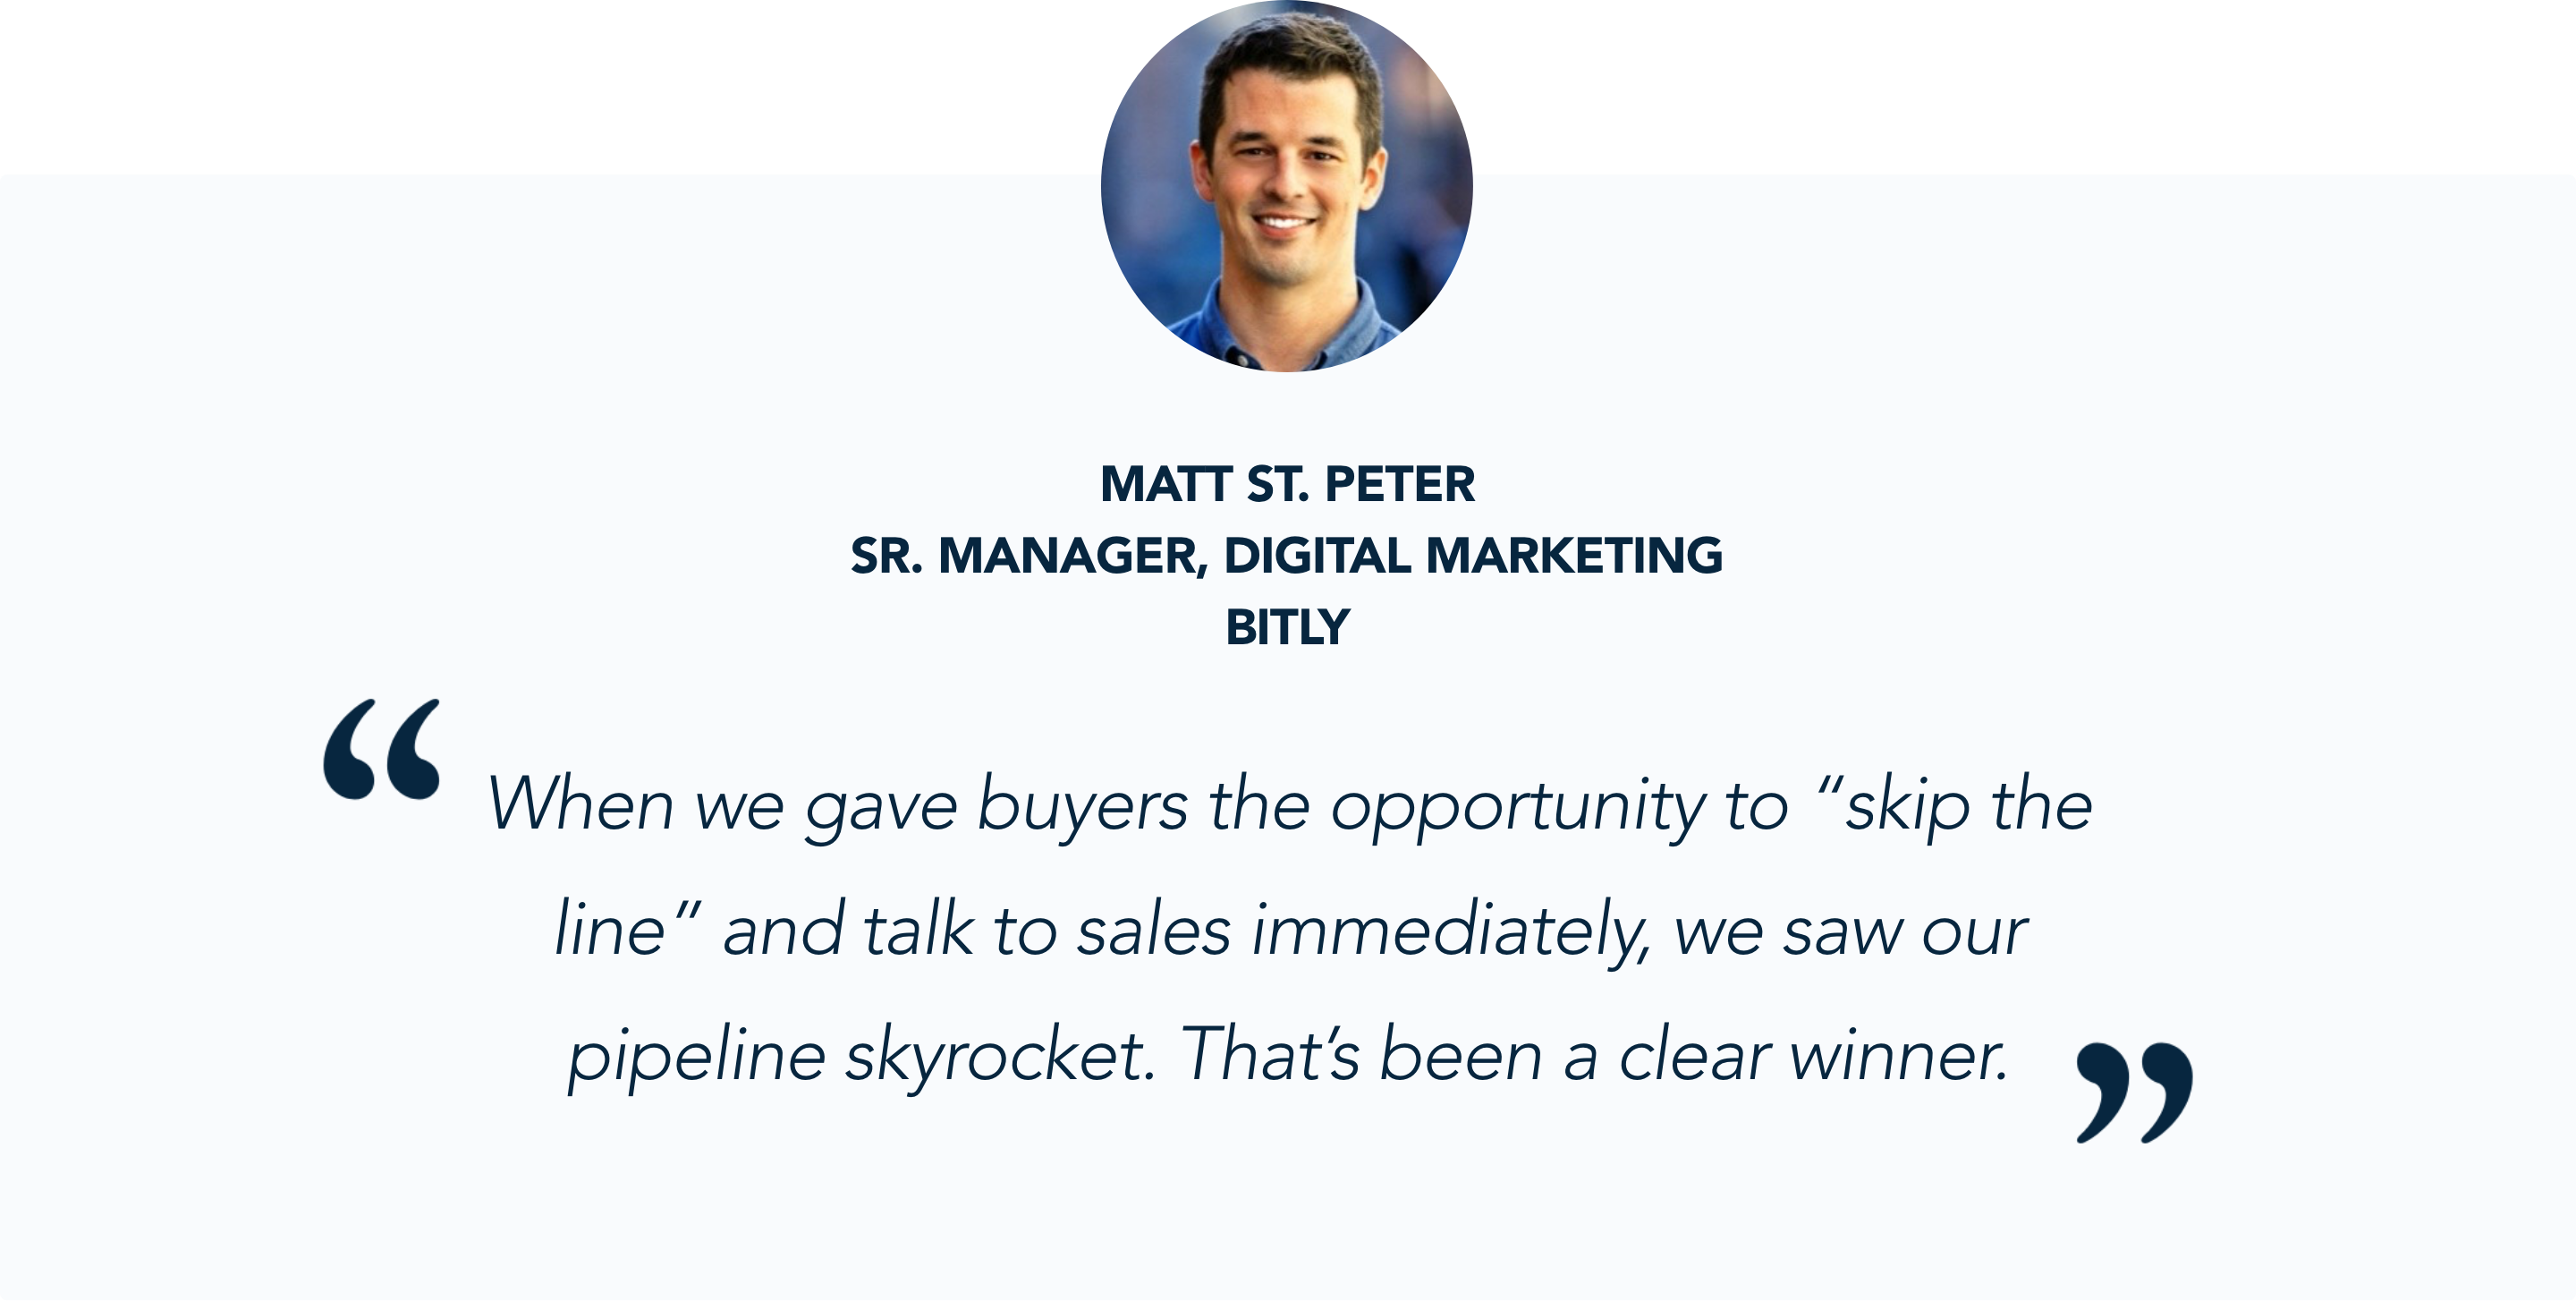 Matt St. Peter, Sr. Manager Digital Marketing at Bitly, shares his experience with Qualified's conversational marketing platform